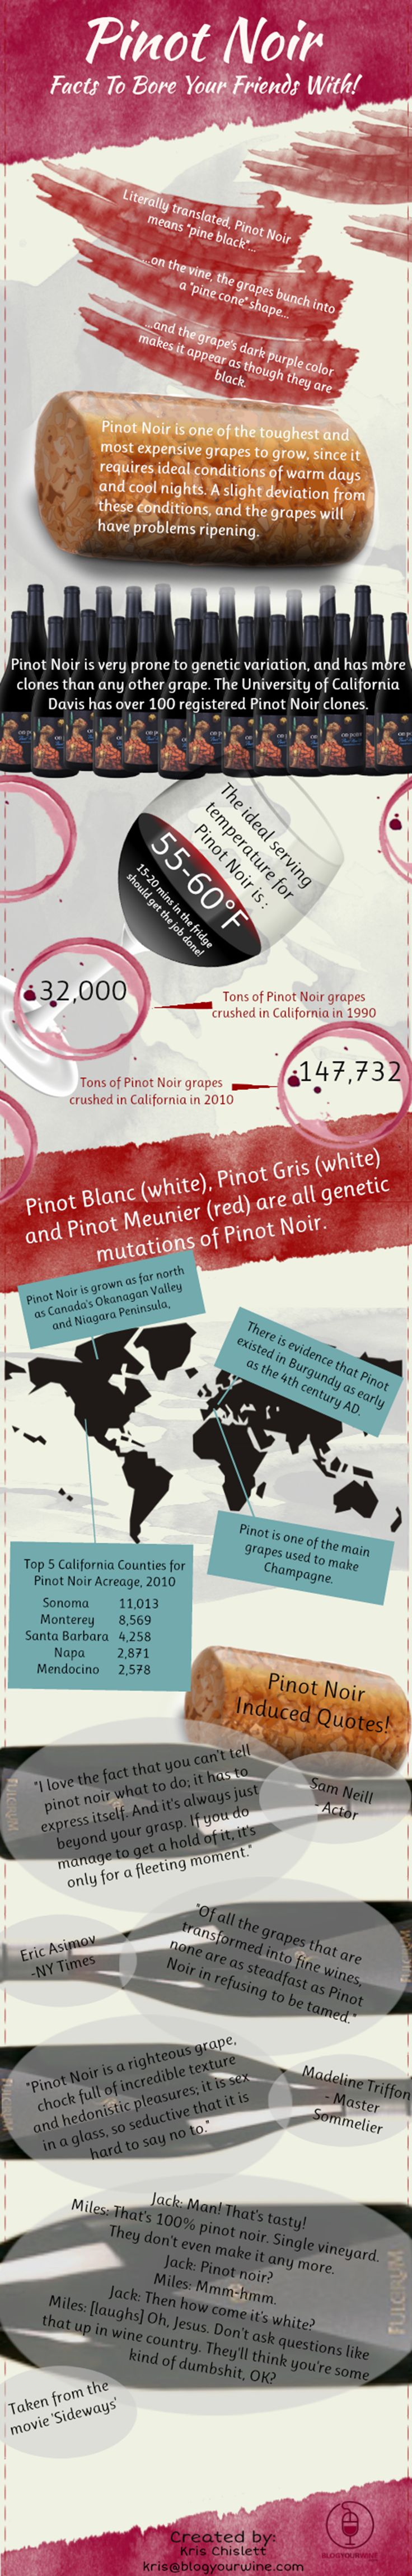 Pinot Noir: Facts to Bore Your Friends With!